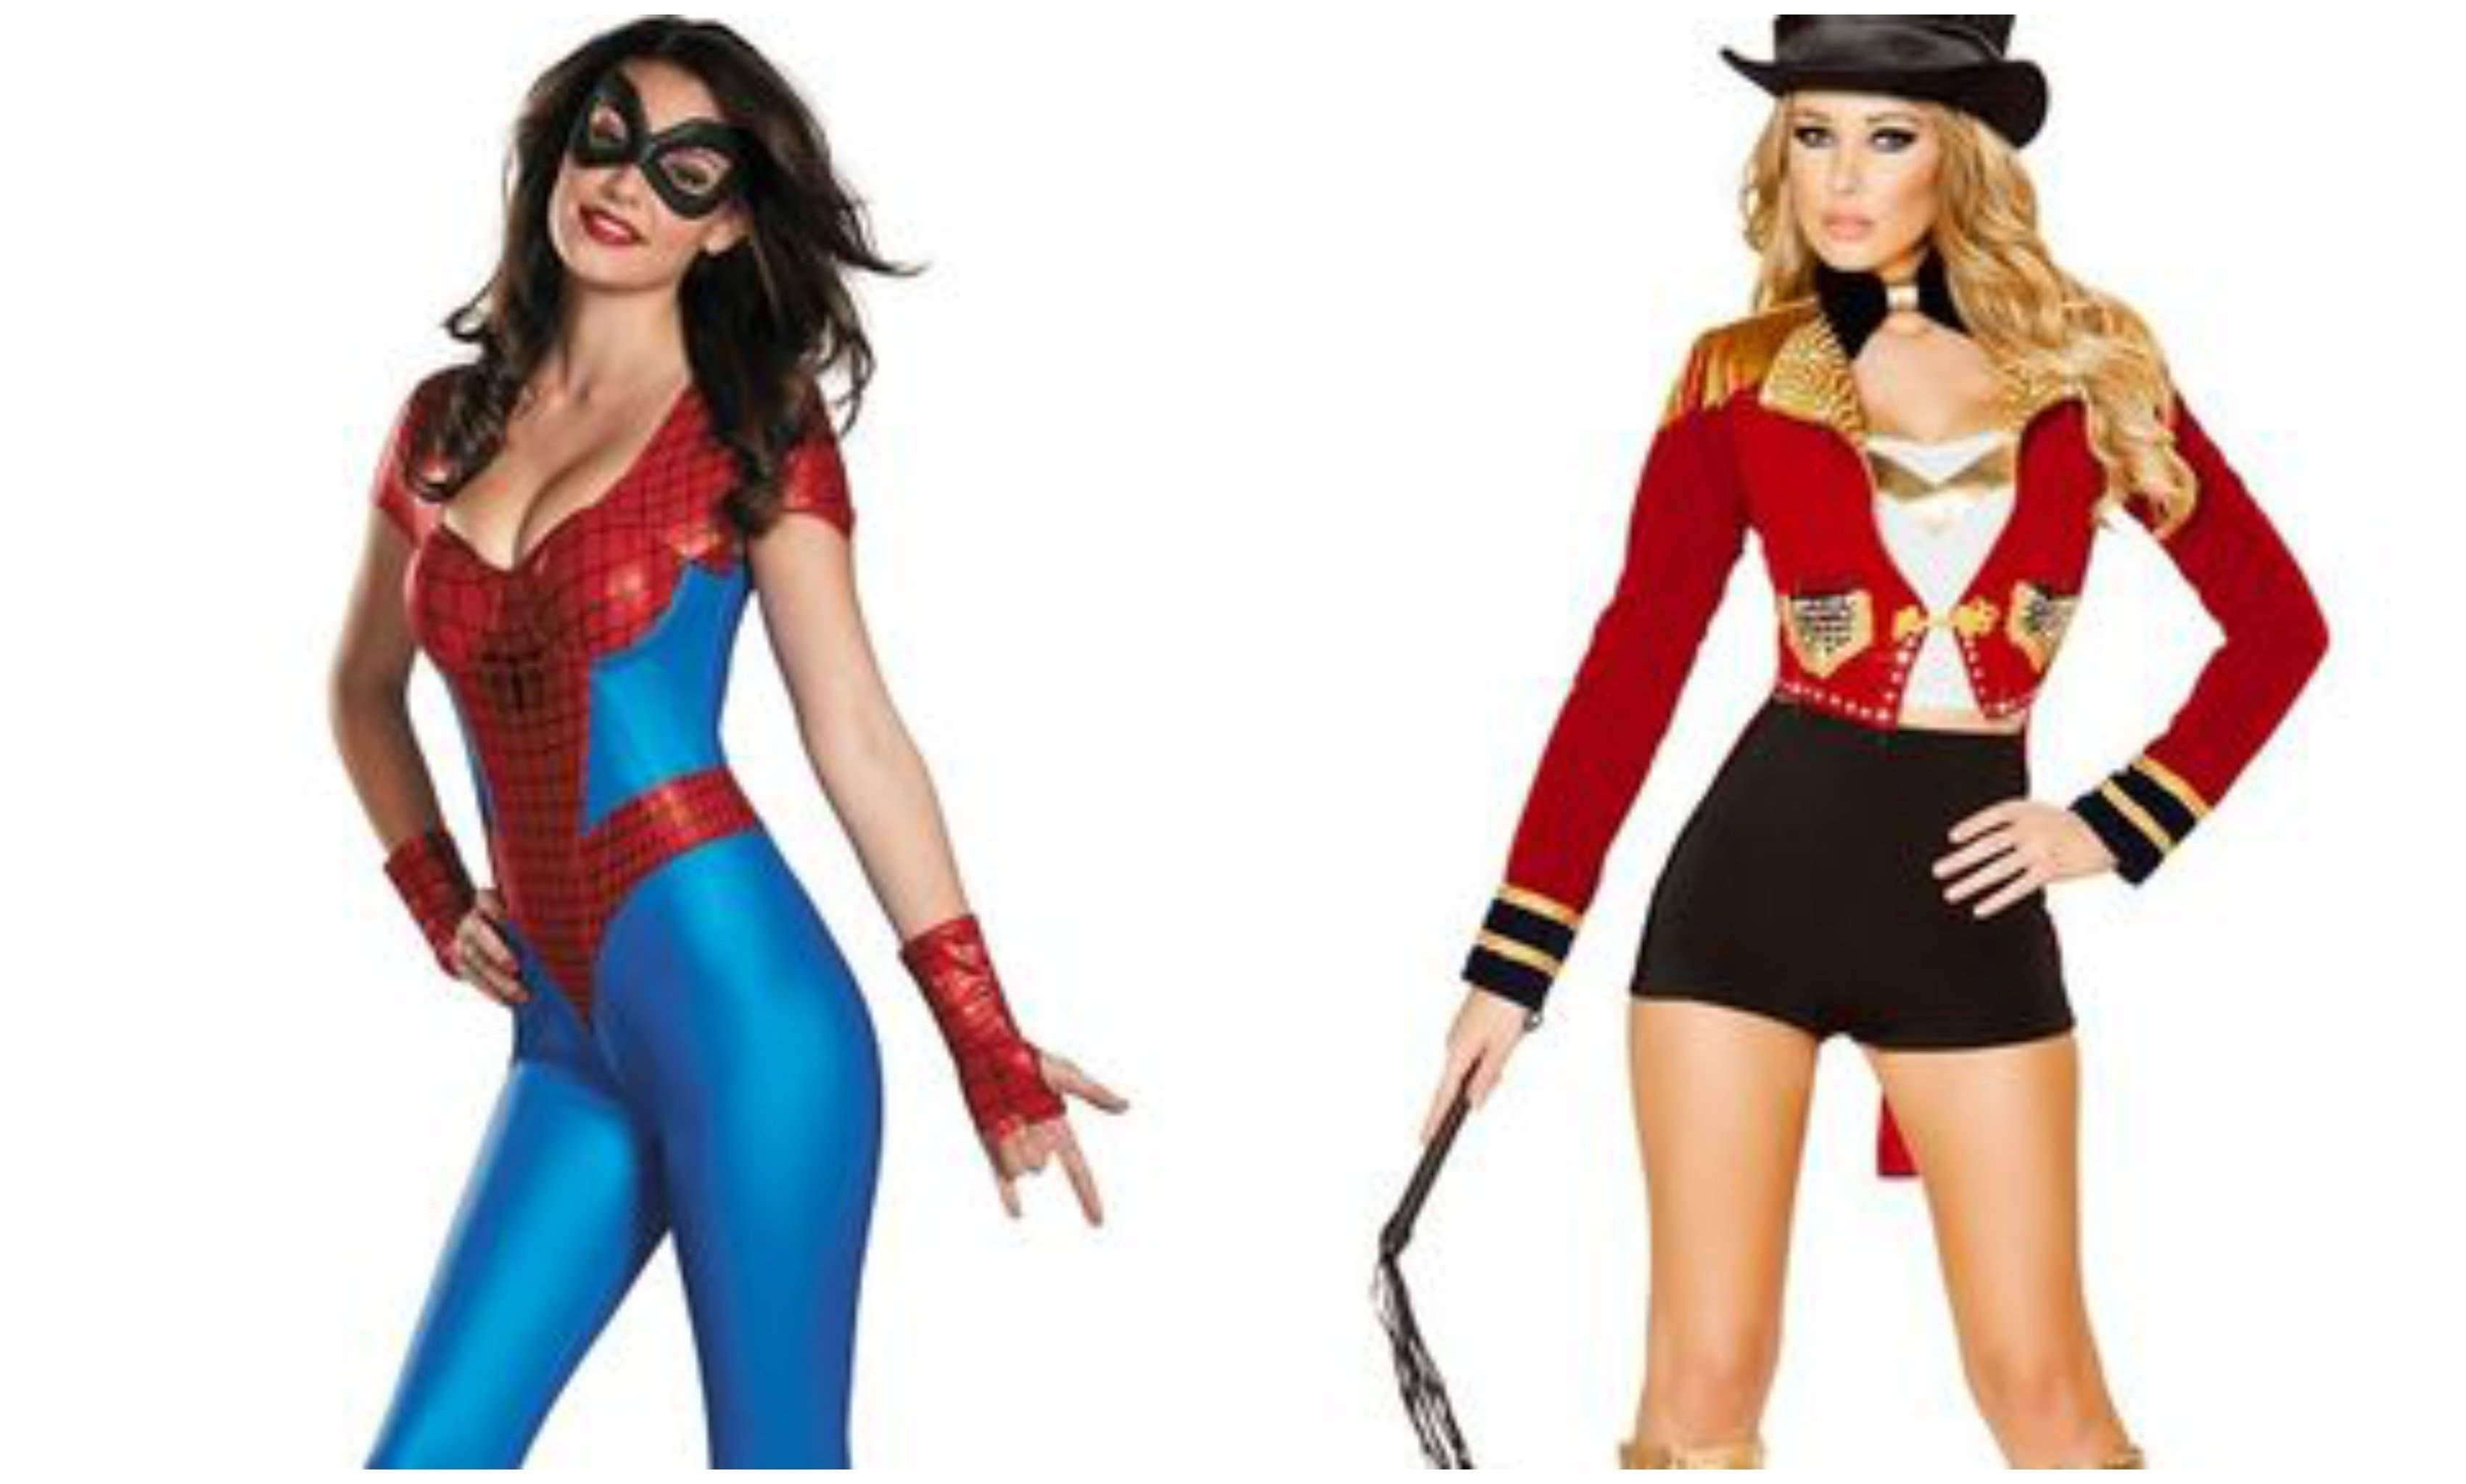 sexy halloween costumes ideas for women lookbook youtube, costume